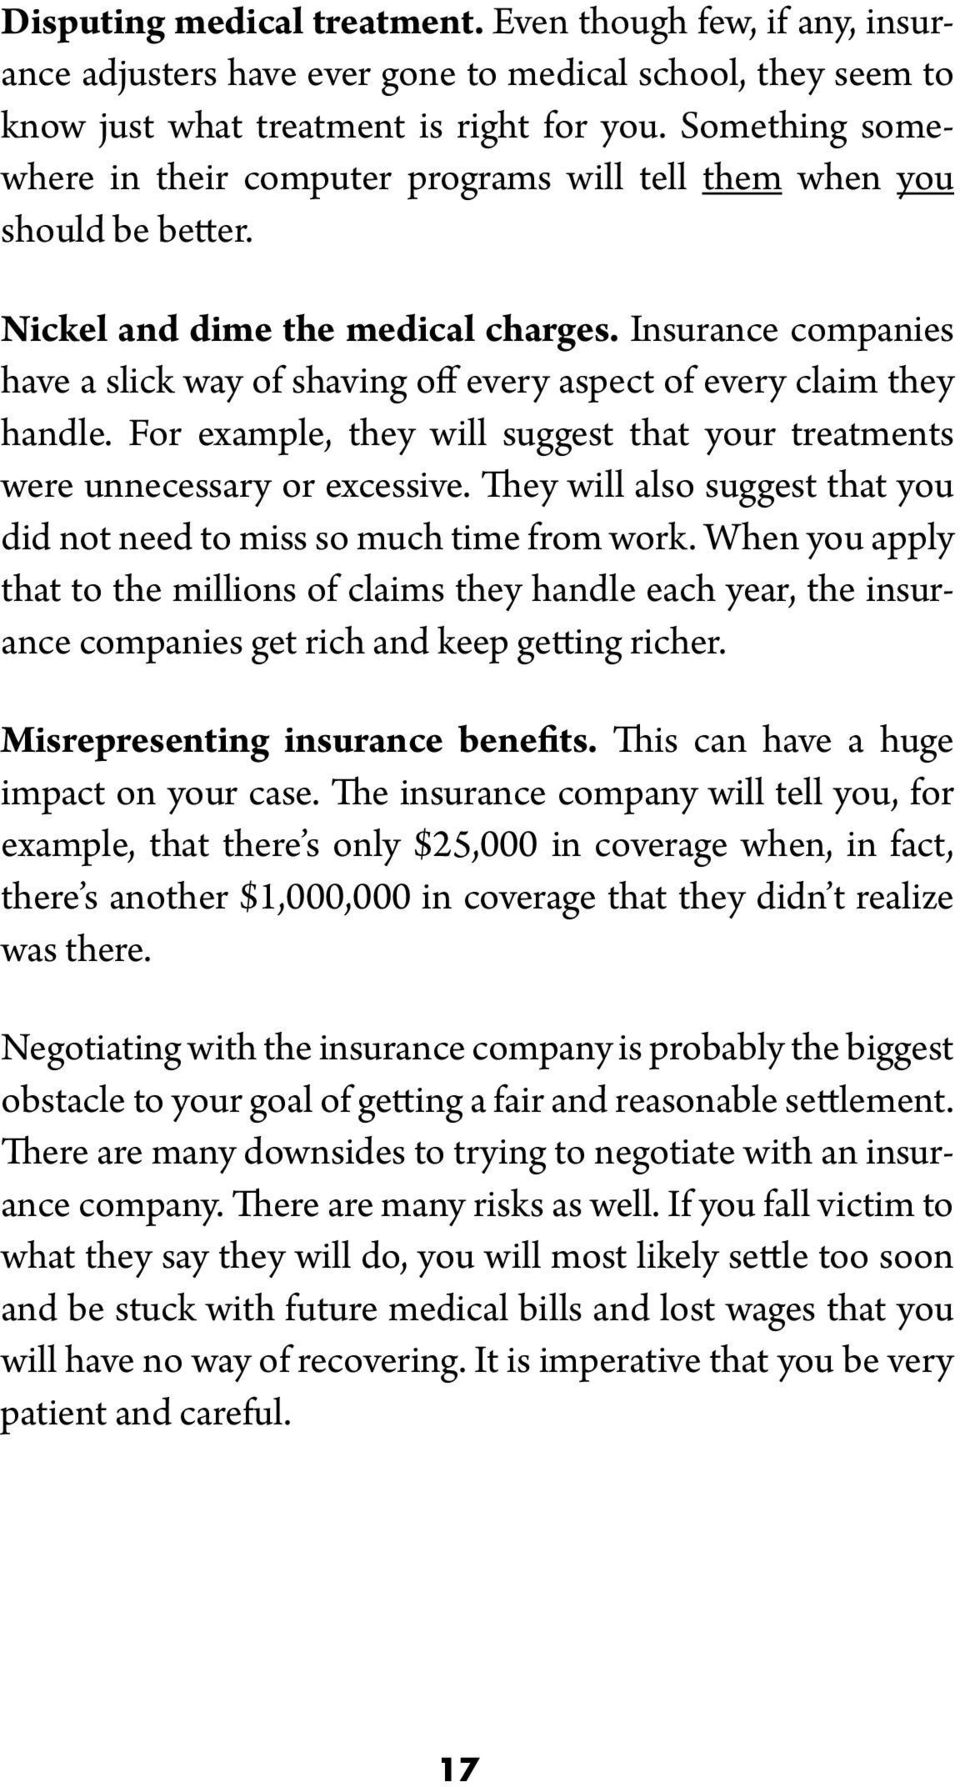 Insurance companies have a slick way of shaving off every aspect of every claim they handle. For example, they will suggest that your treatments were unnecessary or excessive.